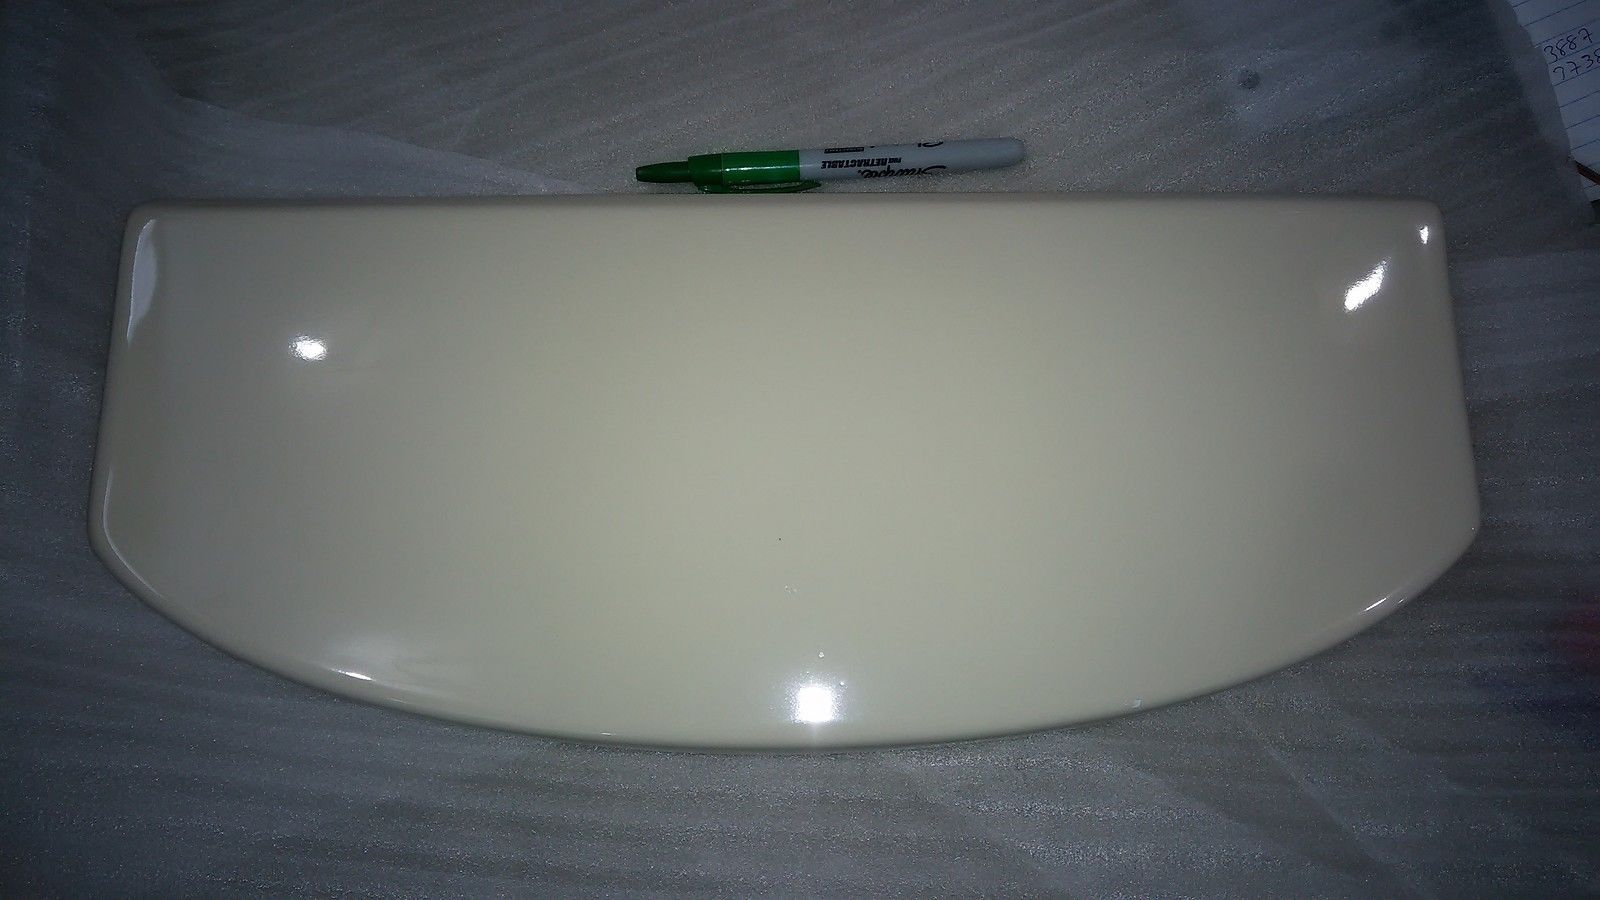 6 Dd18 Kohler 8505 Toilet Tank Lid, Almond / and 50 similar items